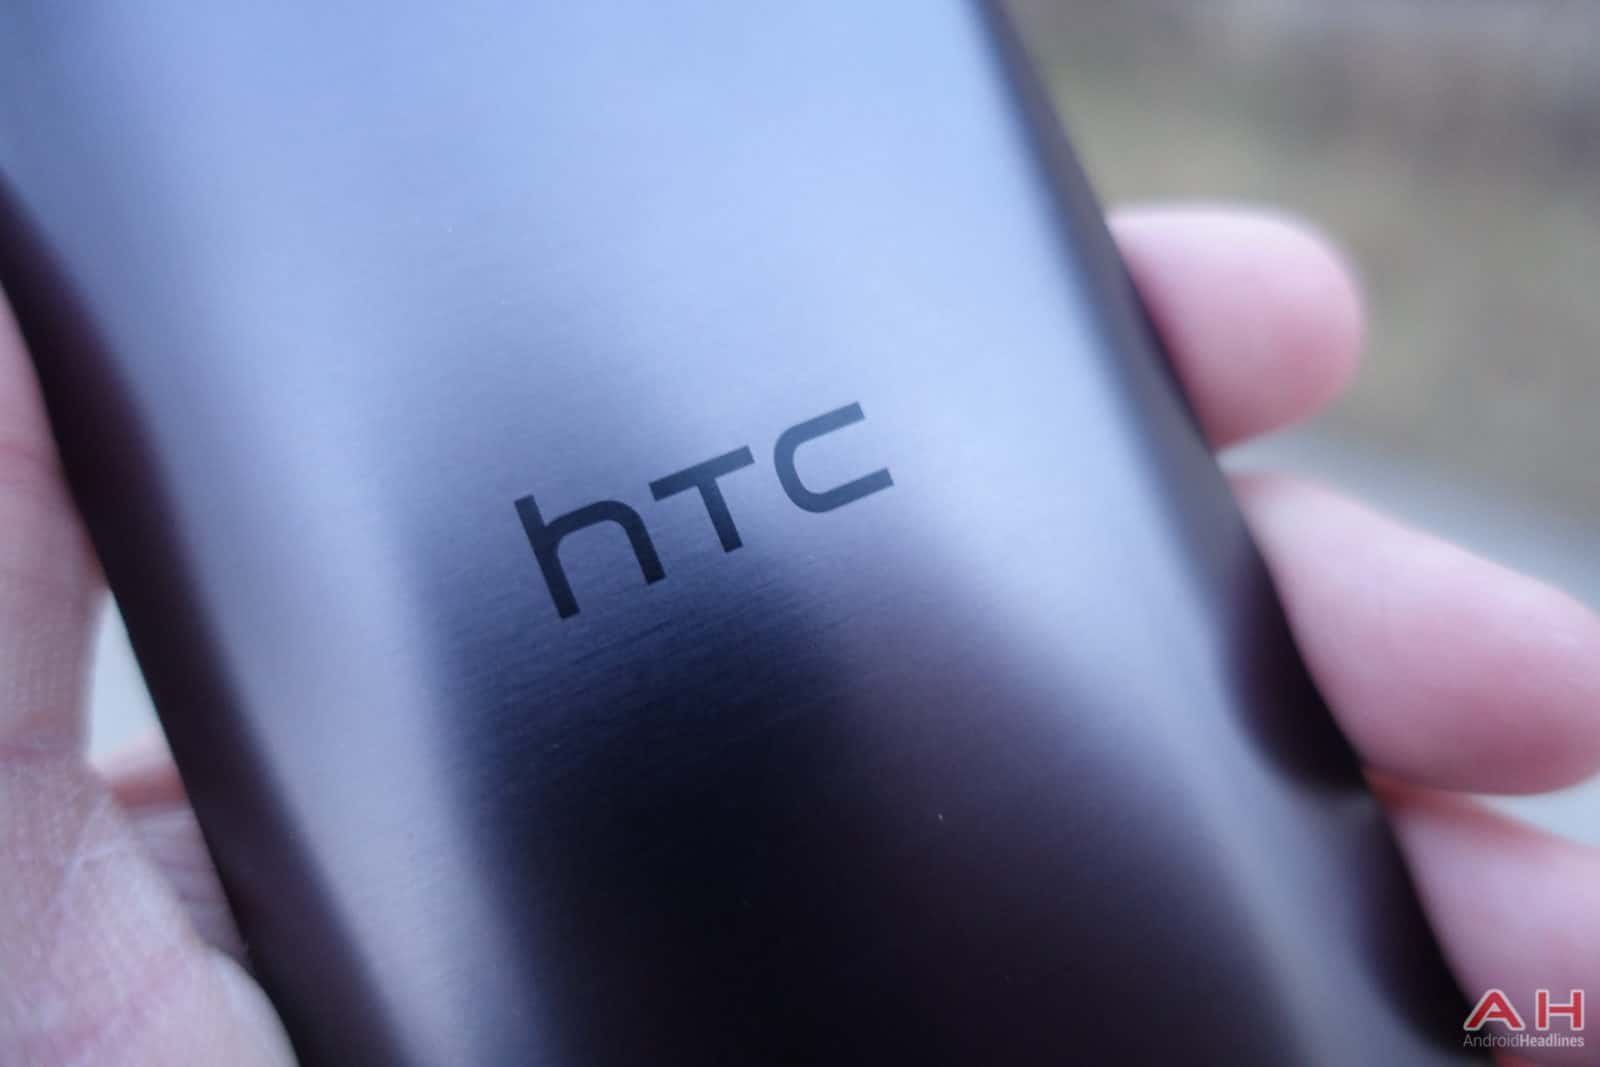 HTC-One-M9-Review-AH-7